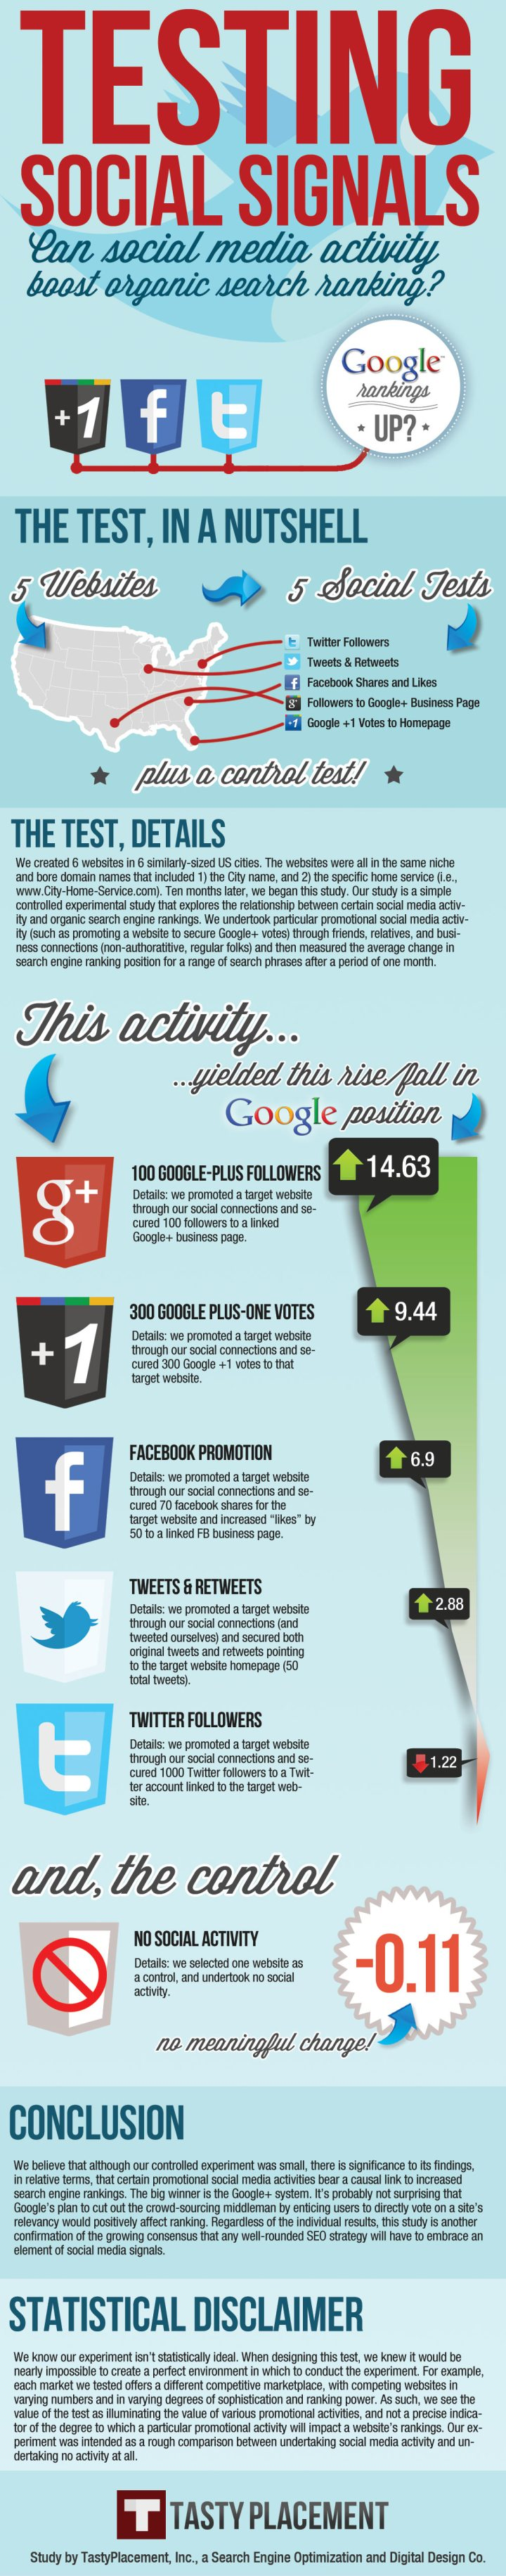 How Does Social Media Affect Website Search Rankings? [INFOGRAPHIC] - AllTwitter